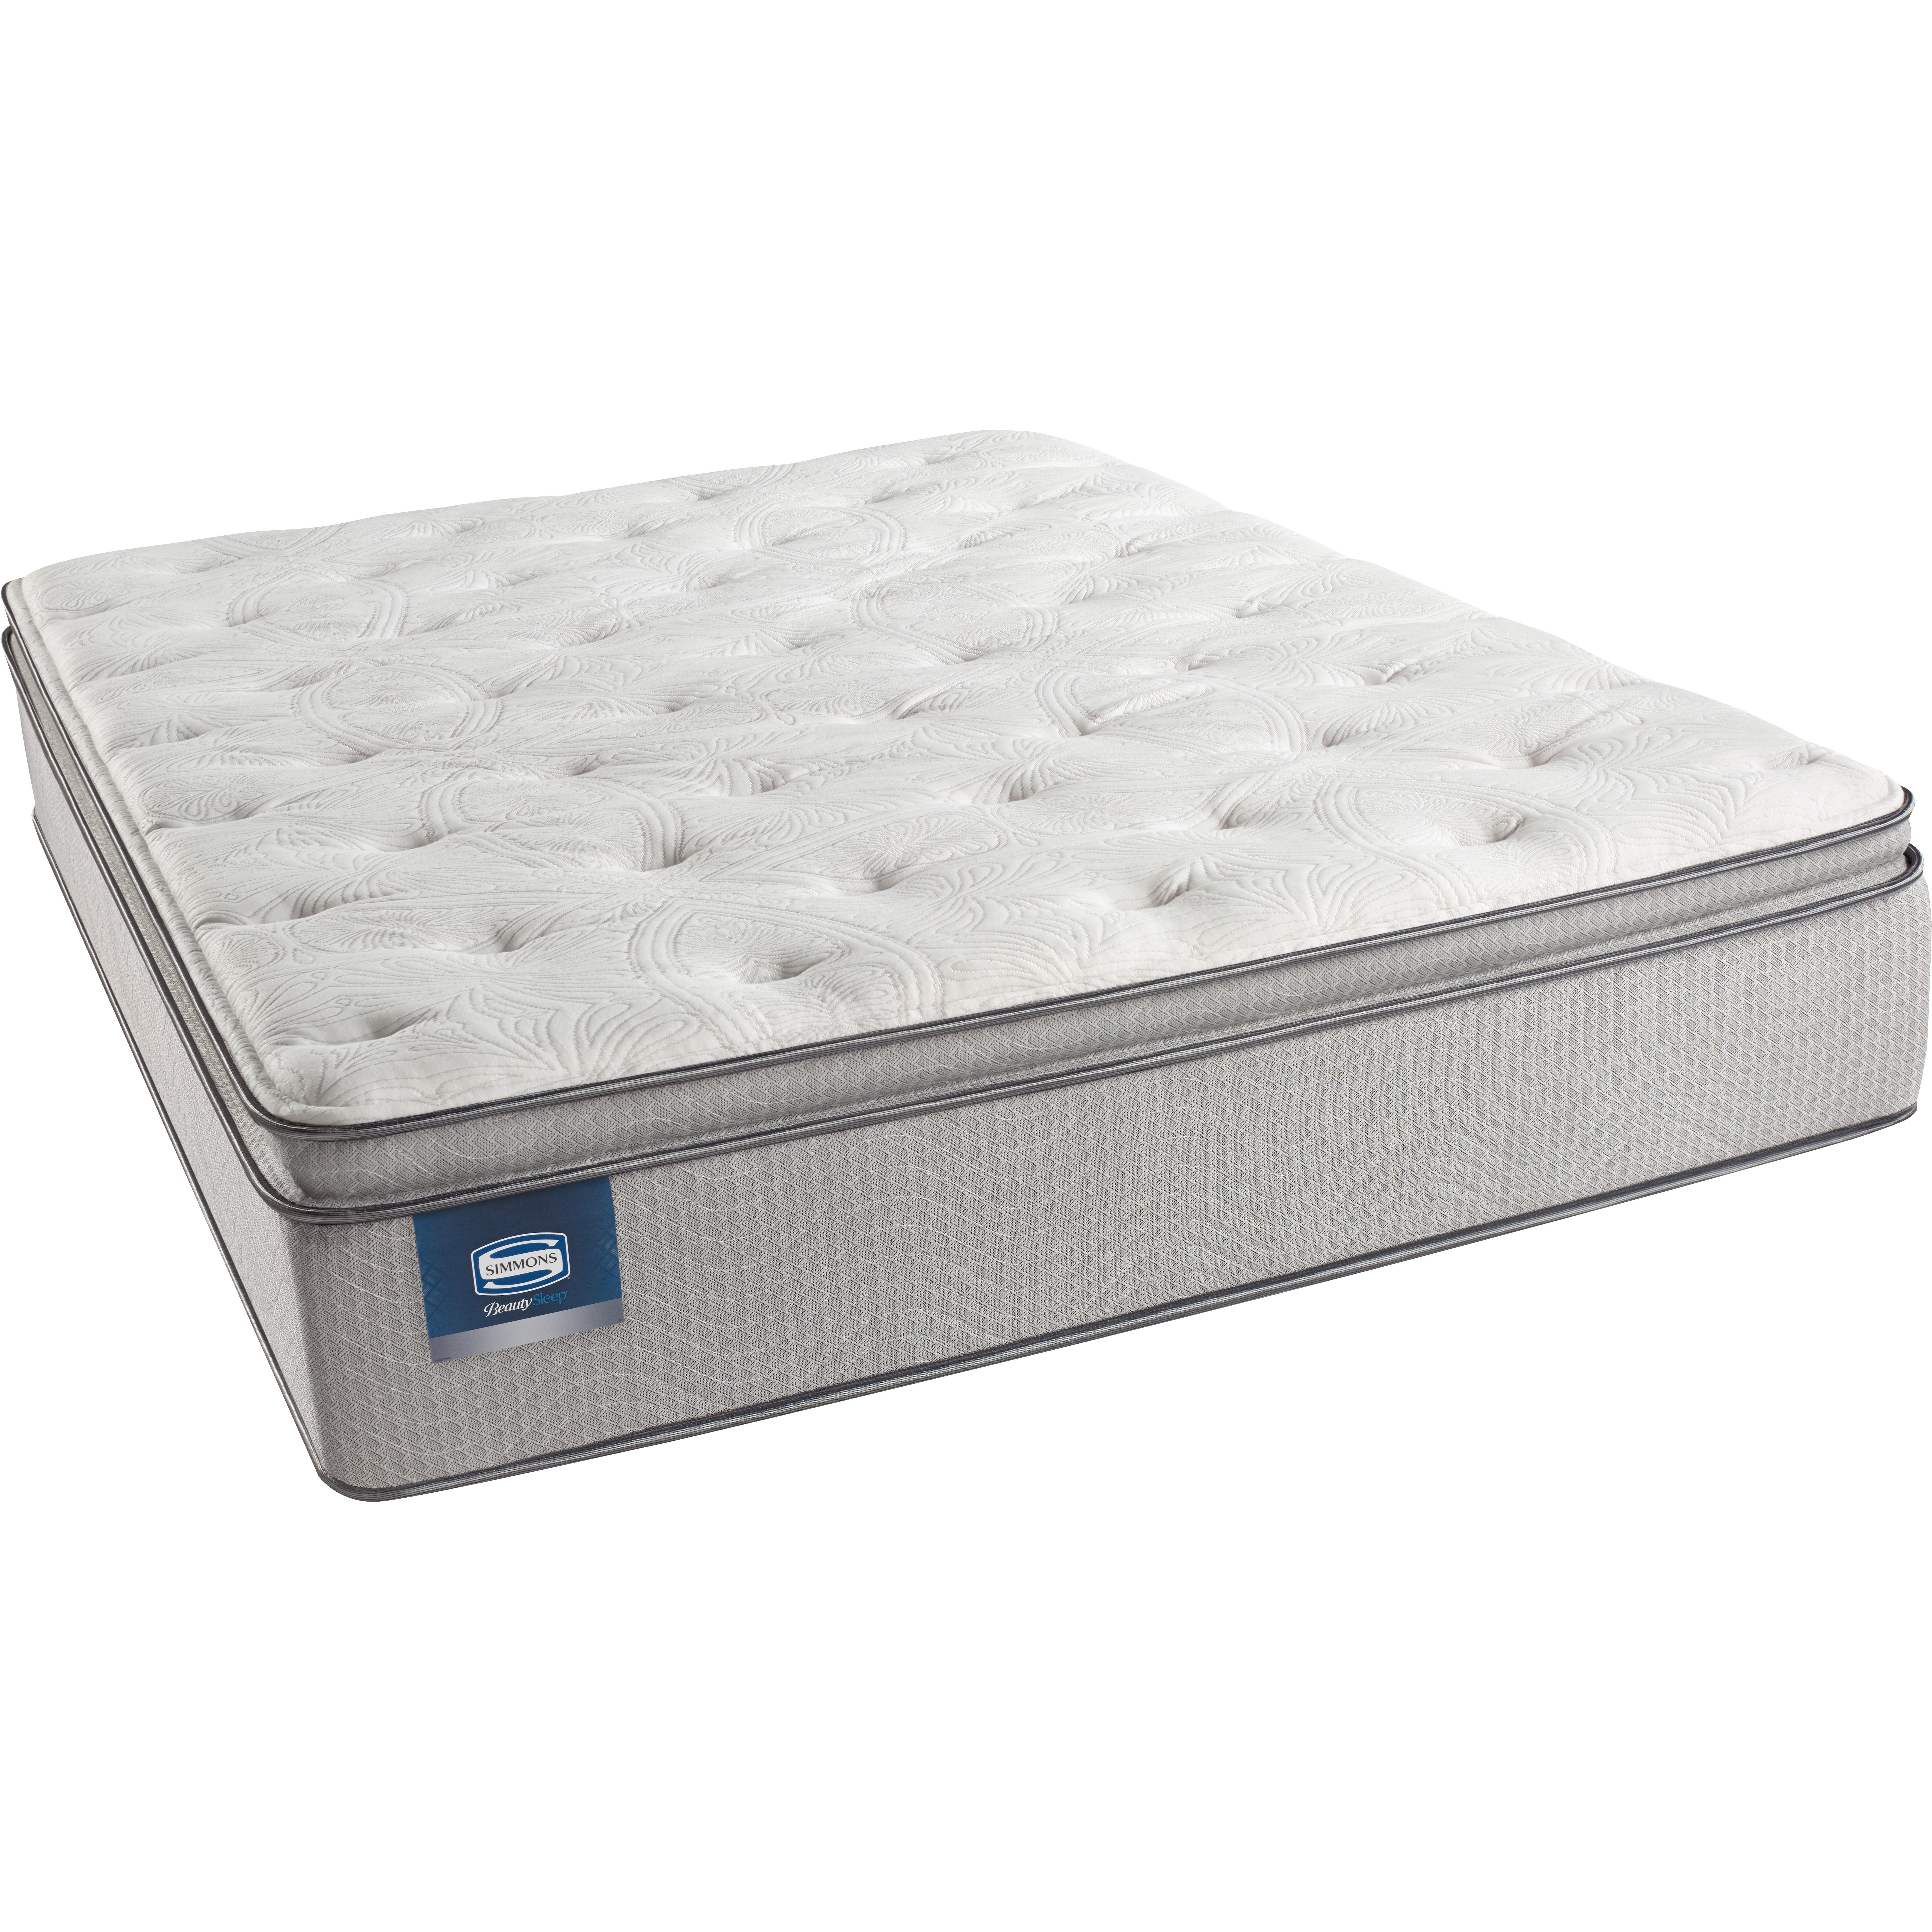 Pillow Top Mattress: Simmons Beautyrest BeautySleep Starfall Plush Pillow Top